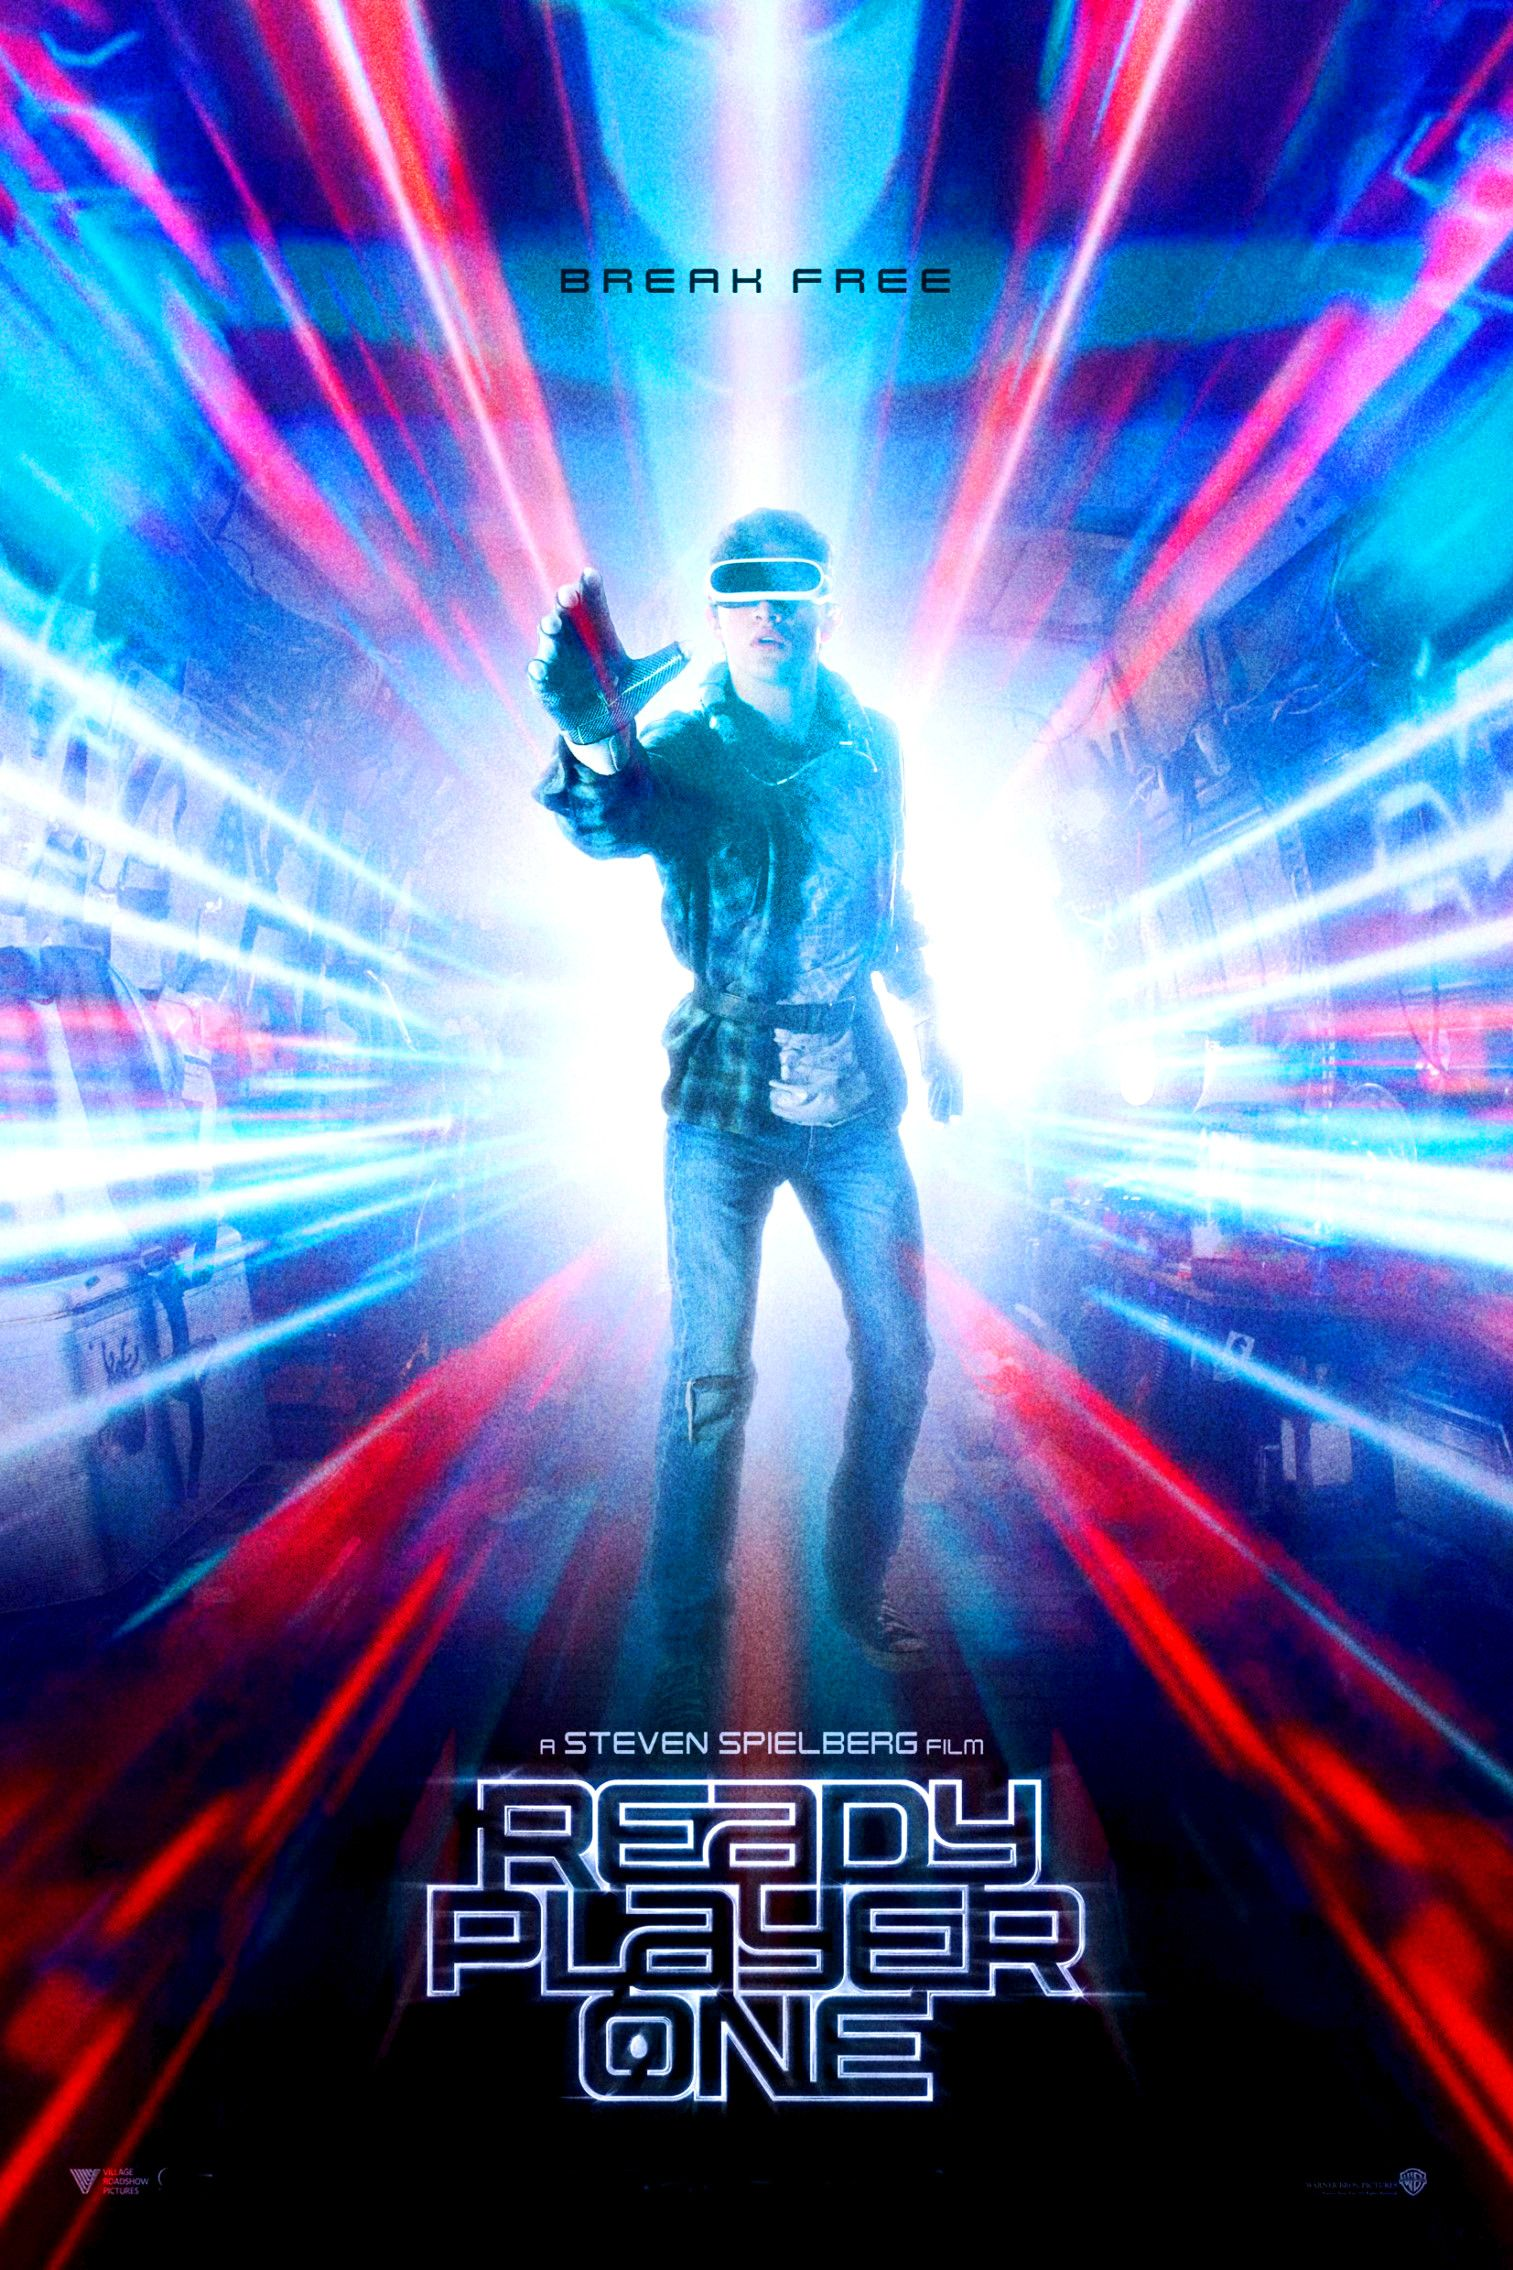 Ready Player One | Movie Art Poster I | Ready Player One ...